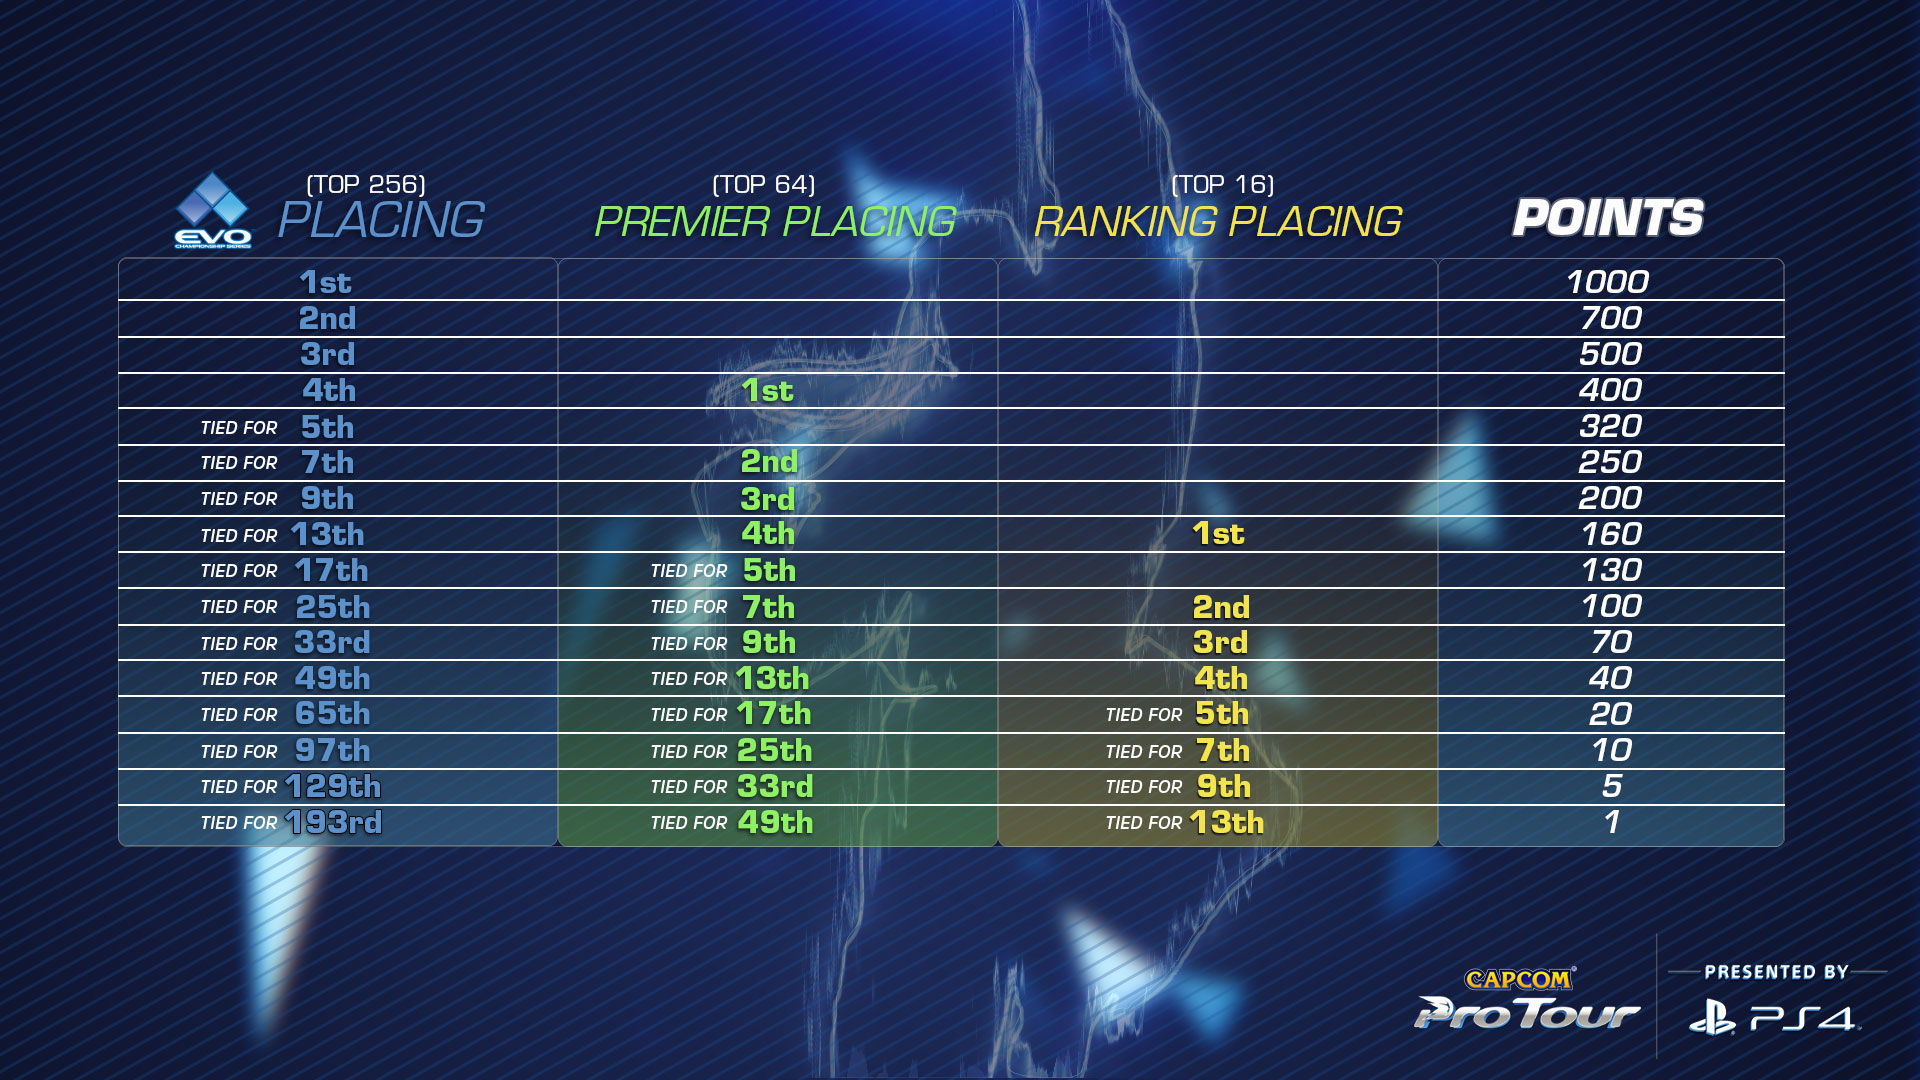 Capcom Pro Tour 2017 Details - Point Distribution Tree